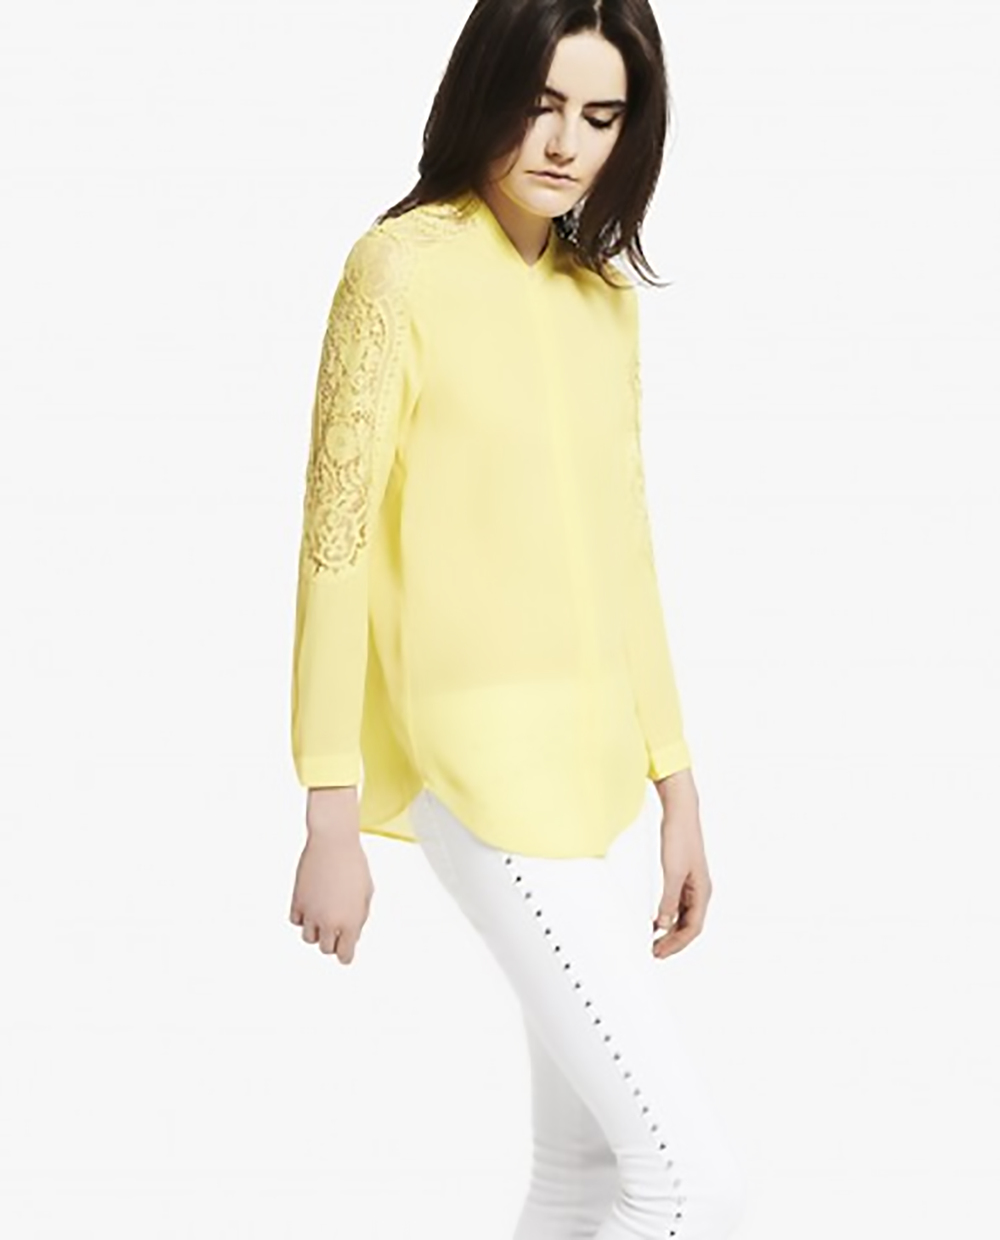 the kooples blouse with lace details see thru shoulders 1500.jpg